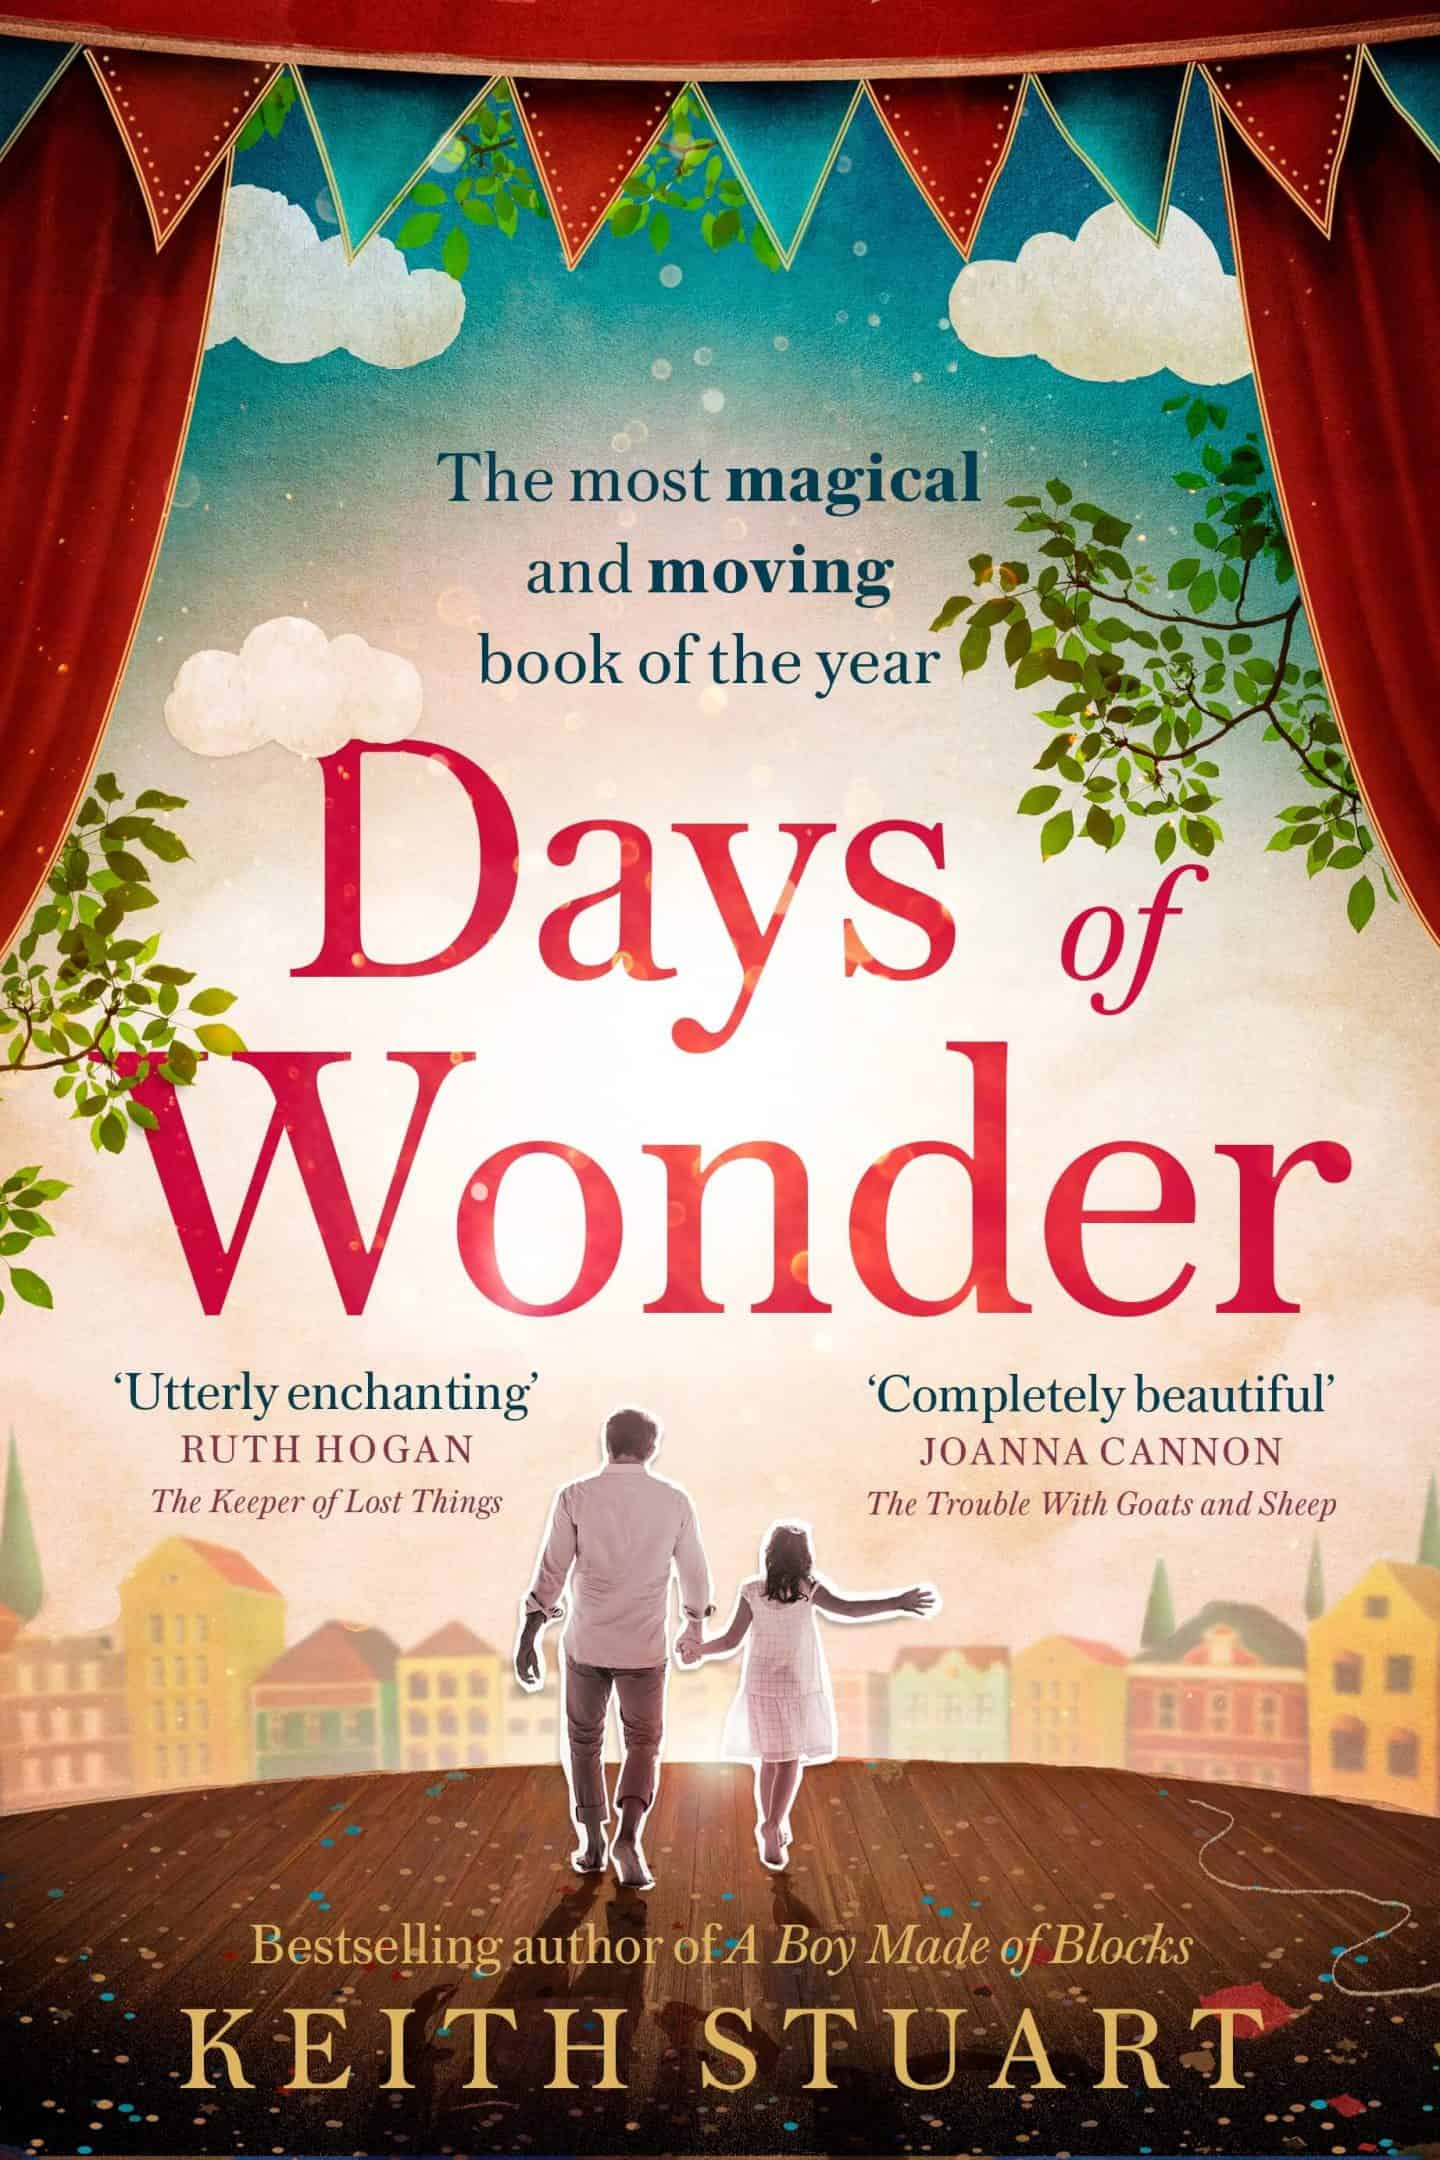 Days of Wonder blog tour by Keith Stuart